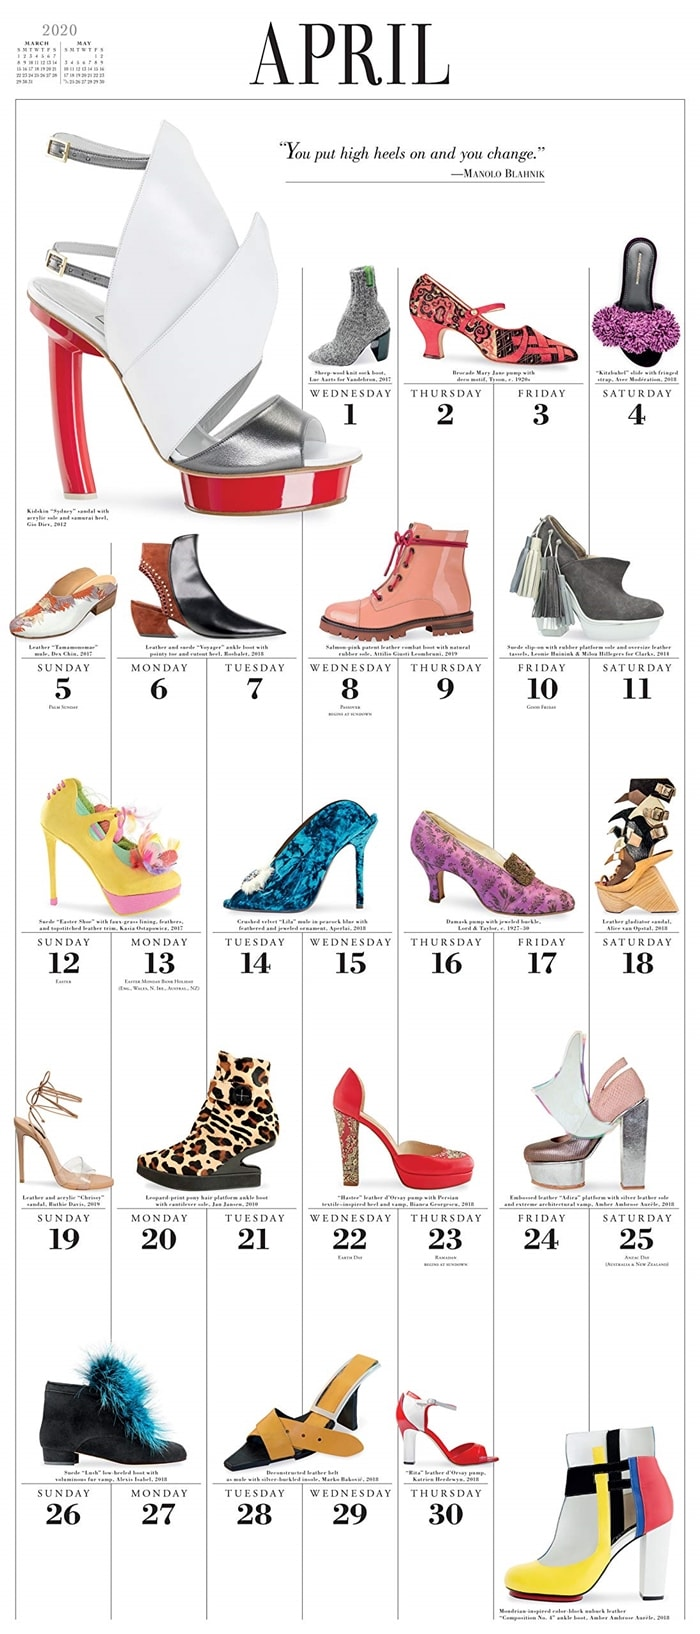 365 Days of Shoes Picture-A-Day Wall Calendar 2020 April